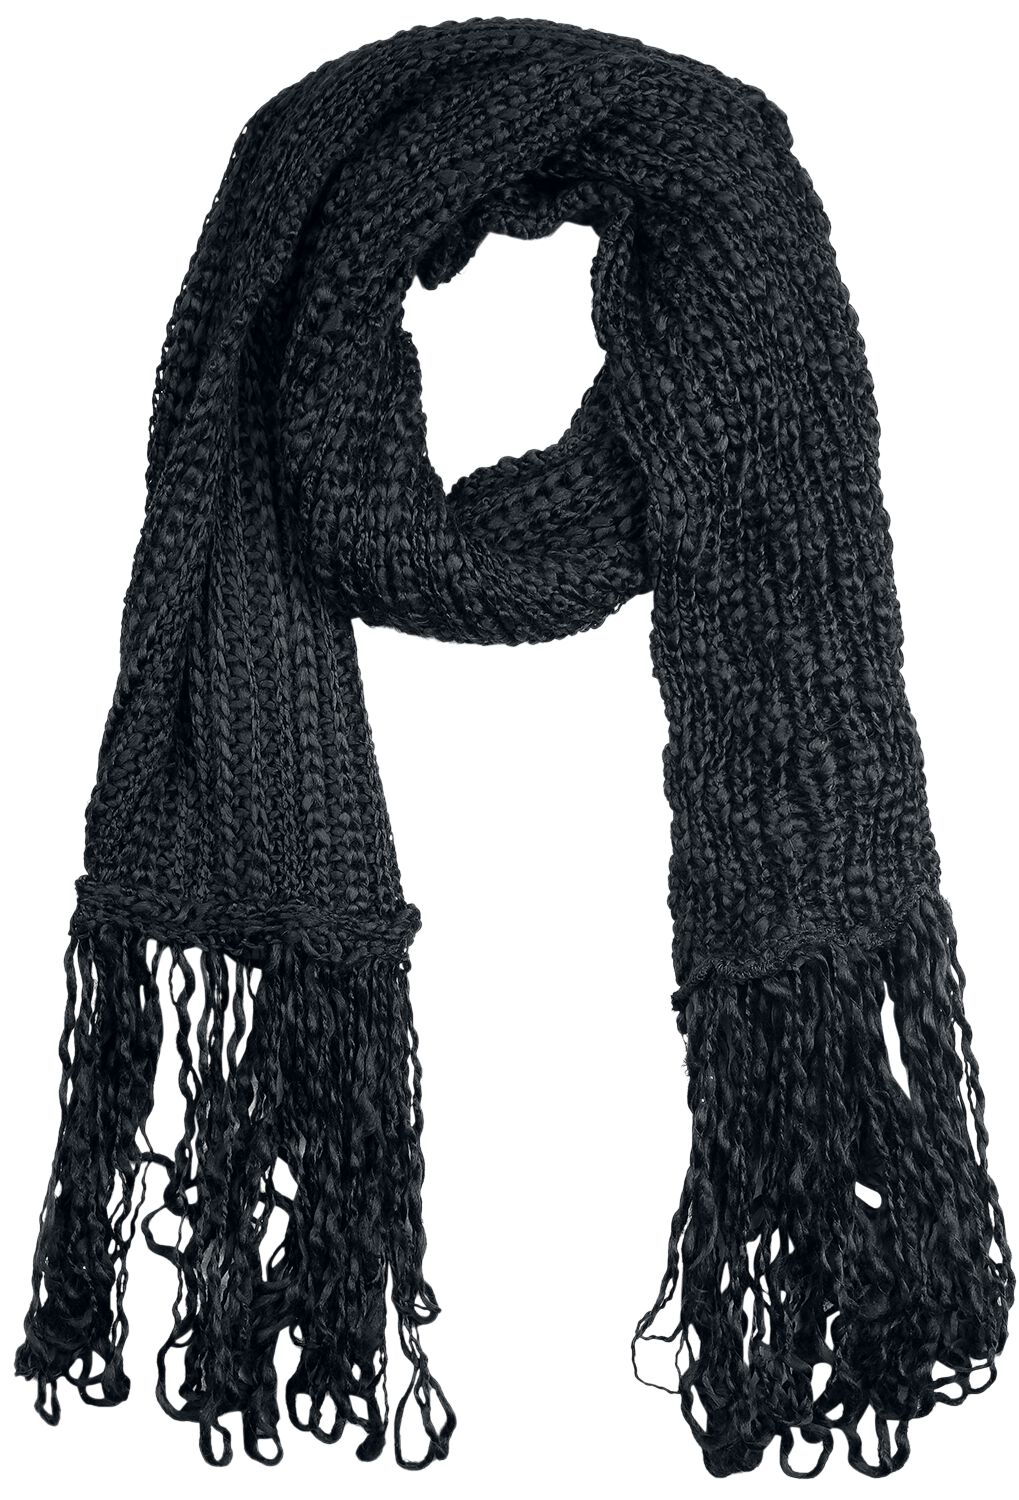 Schals - Black Premium by EMP Take Your Scarf Schal schwarz  - Onlineshop EMP